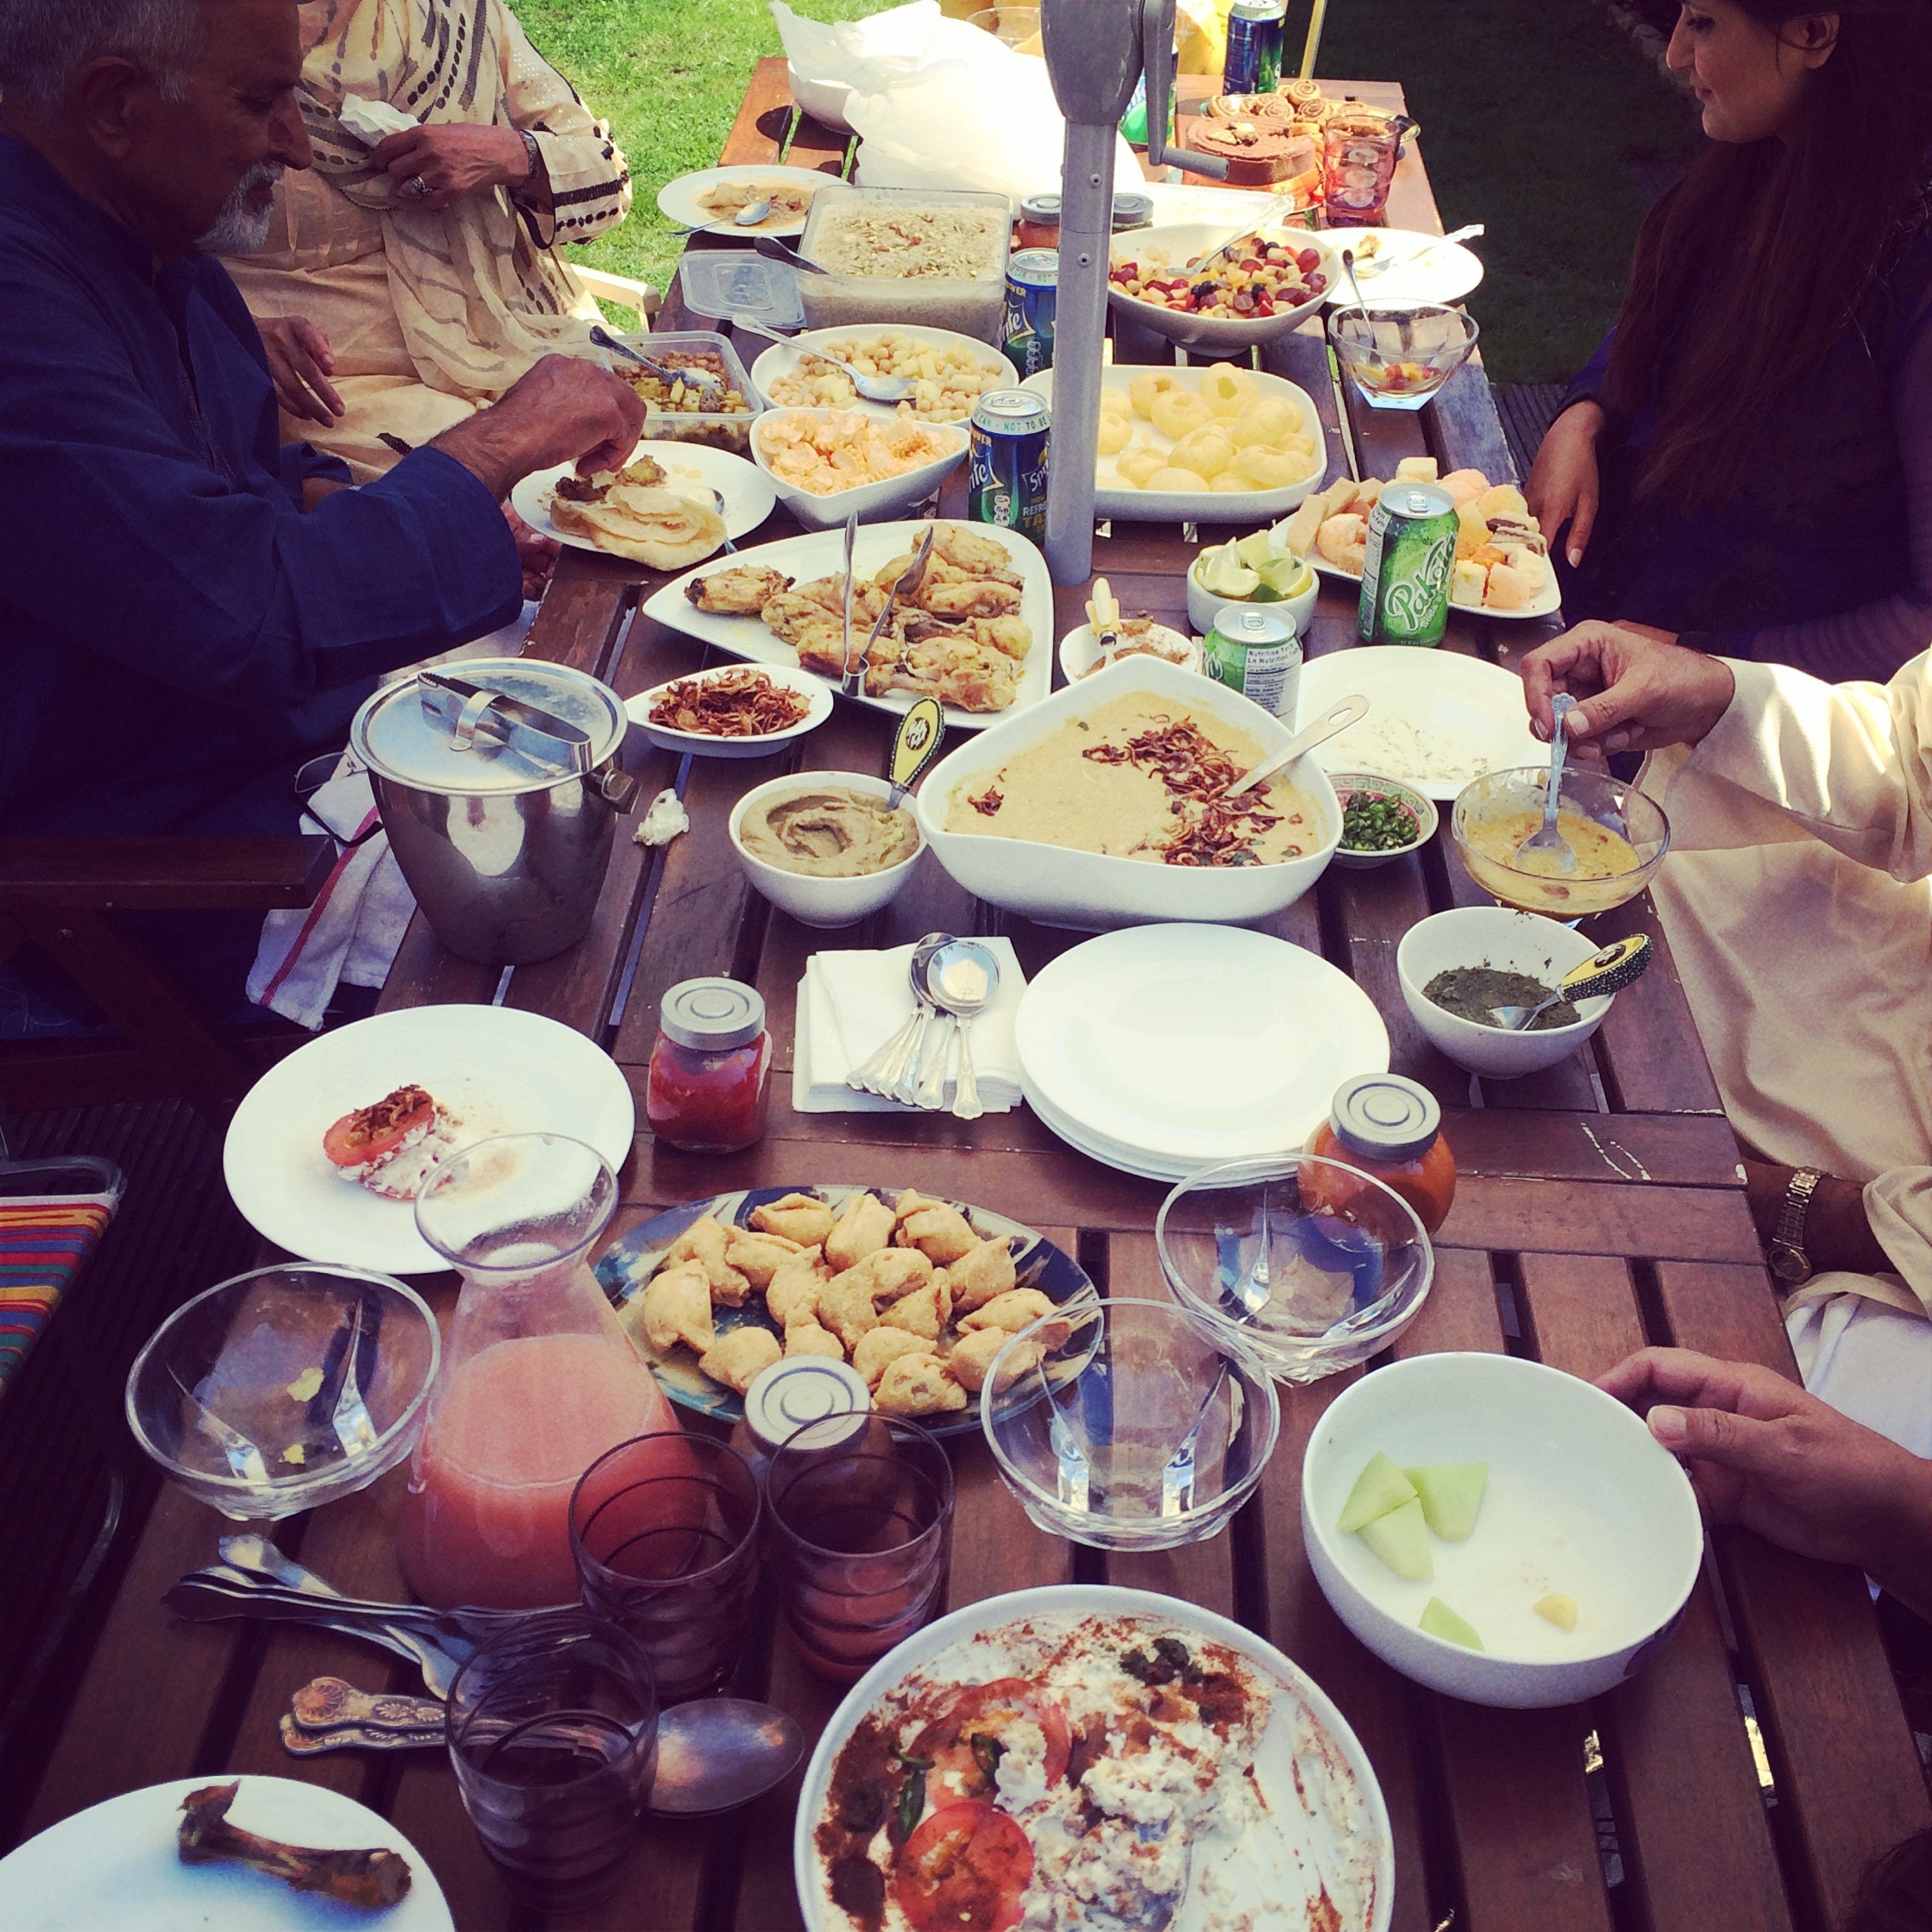 The Family Socials - Sharing platters of food around a table together